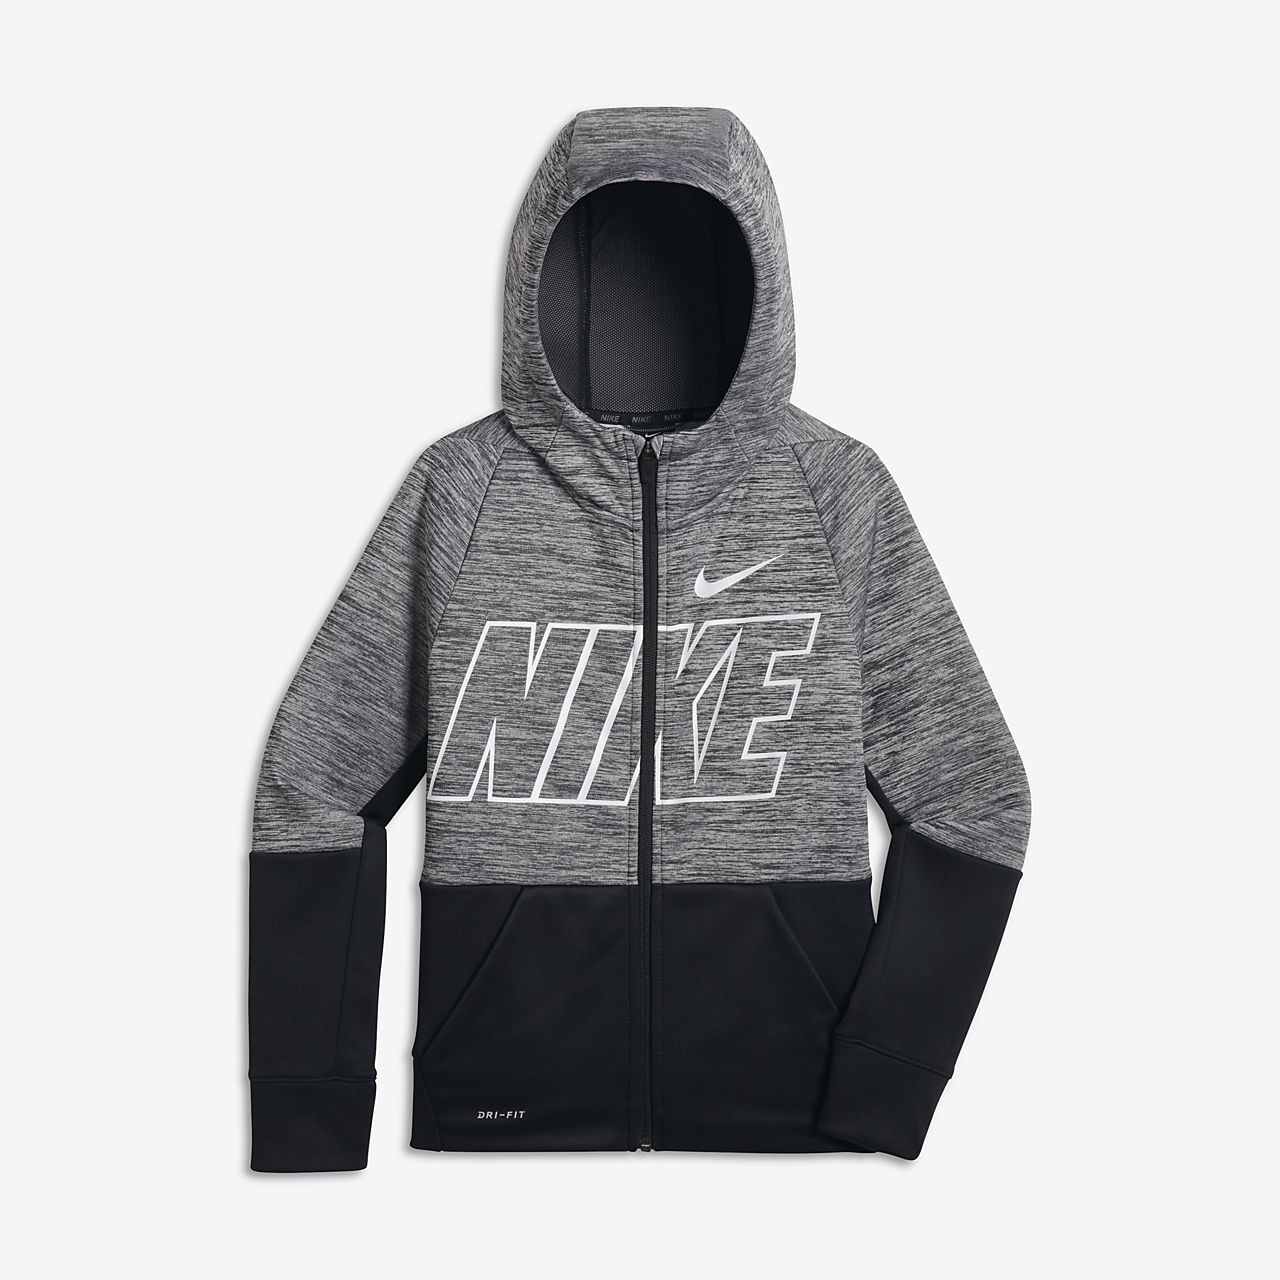 1bae2156e61e Nike Dri-FIT Therma Older Kids  (Boys ) Full-Zip Training Hoodie ...